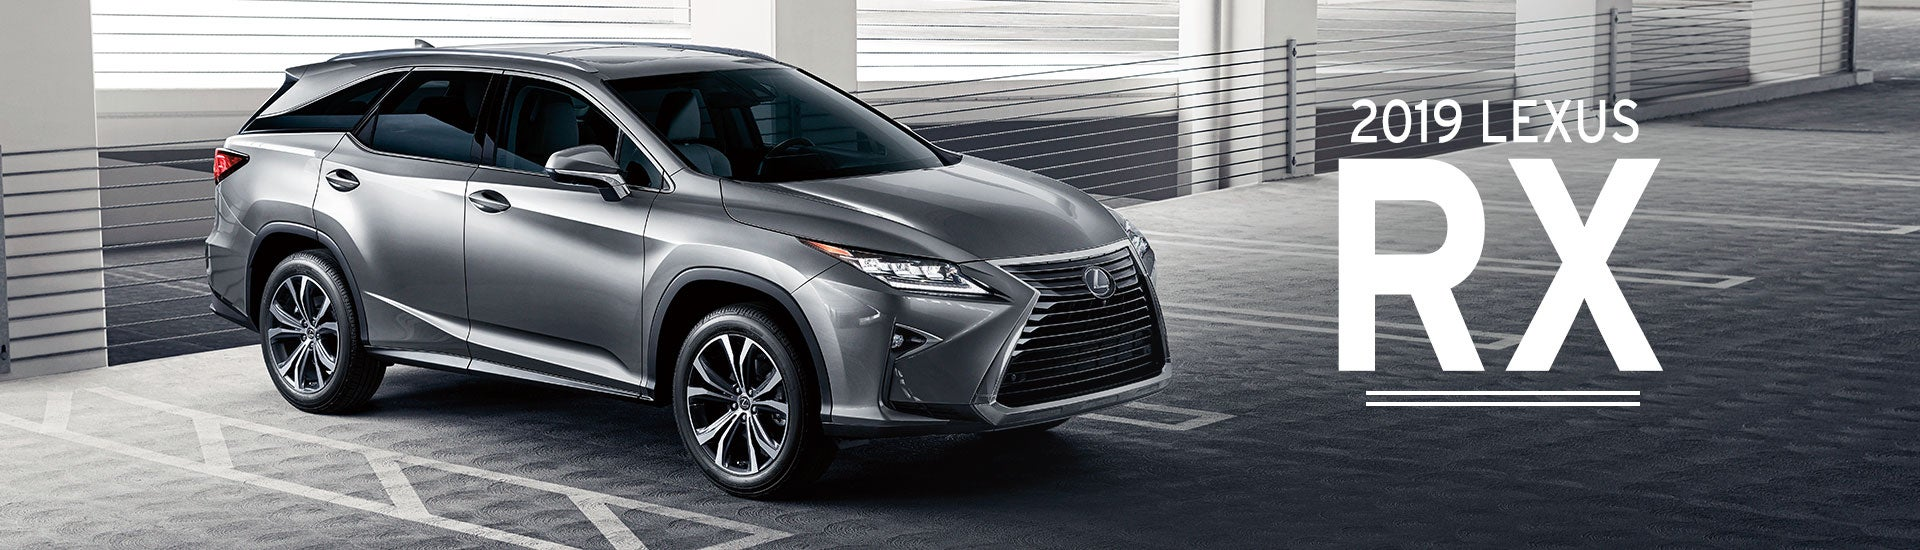 Lexus Dealers In Ohio >> Lexus Of Louisville New And Used Lexus Dealership In Louisville Ky